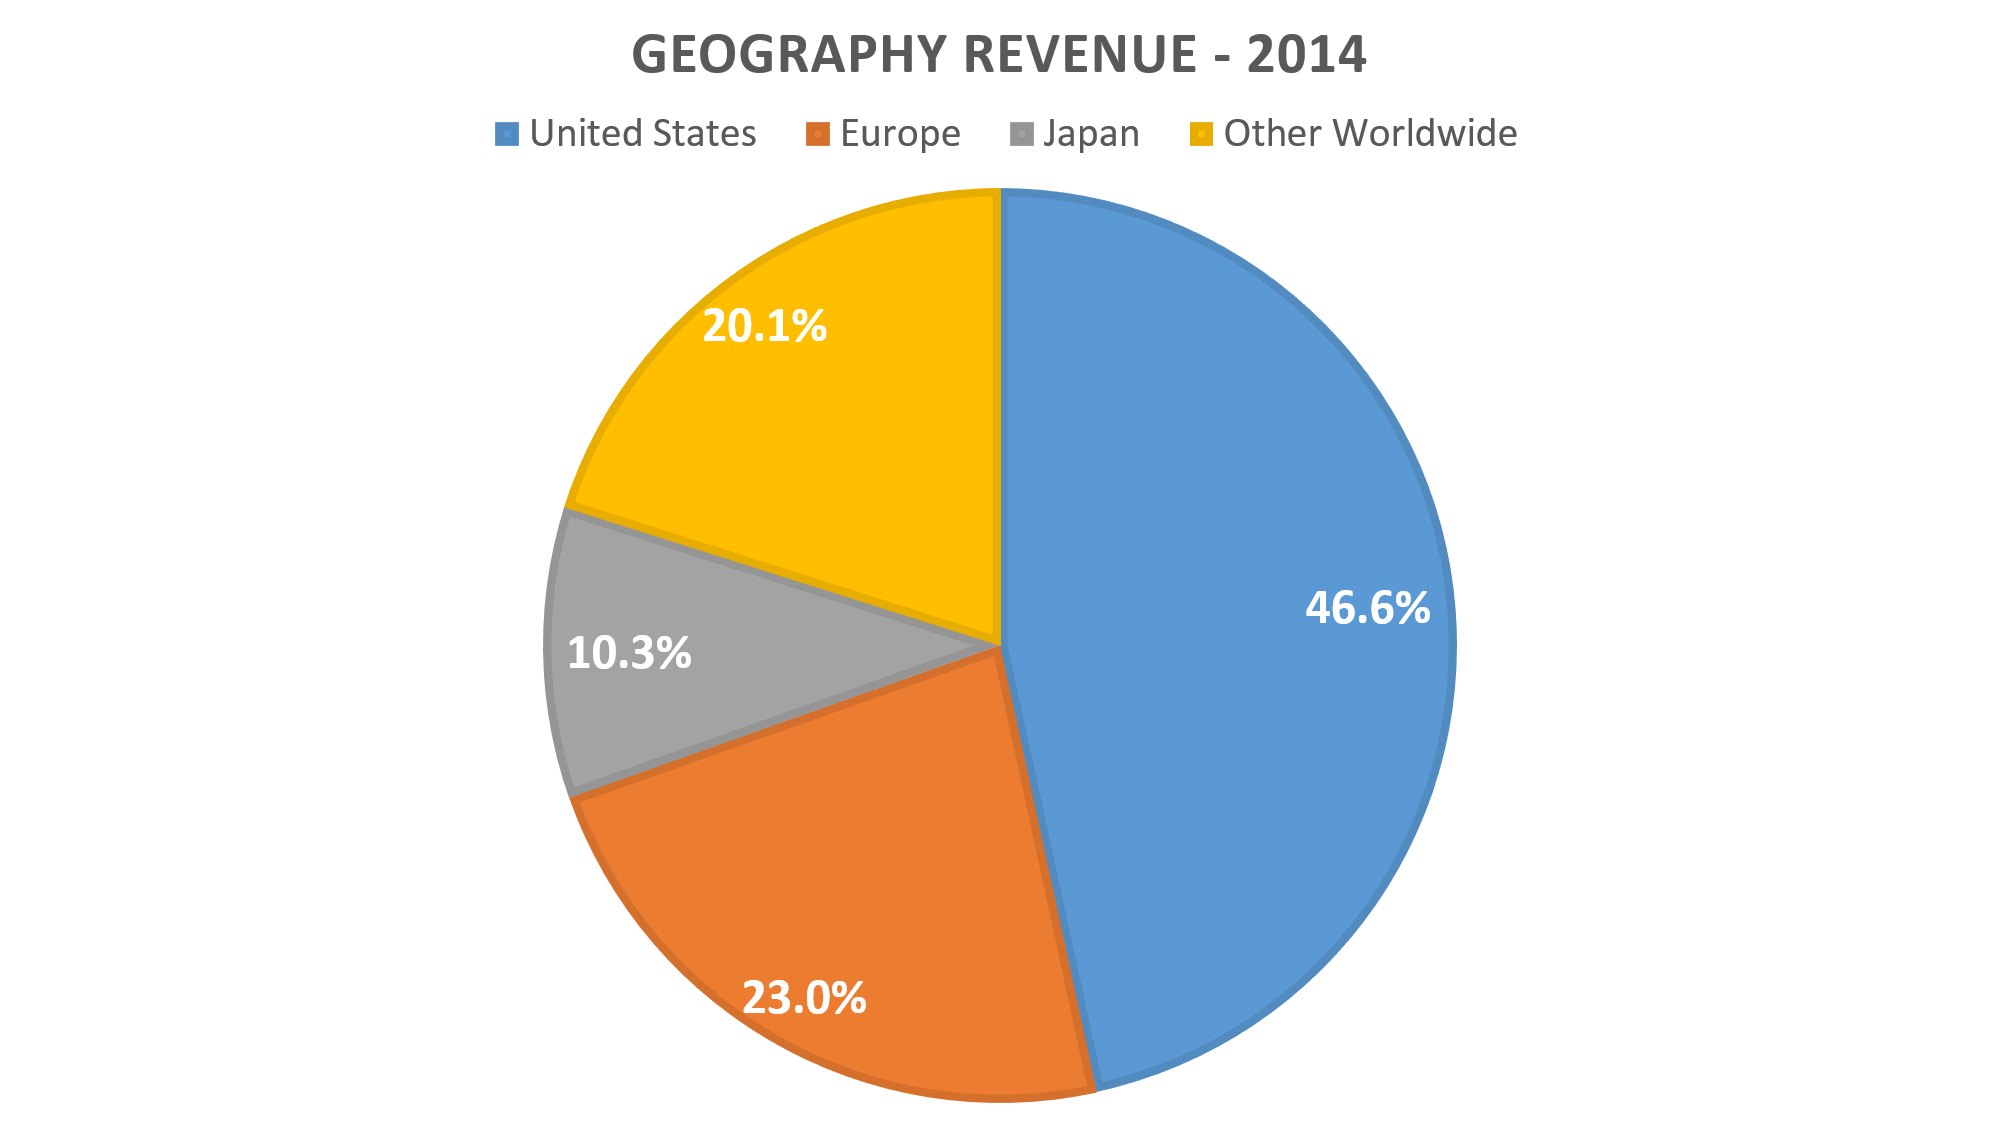 Eli Lilly - 2014 Geography Revenue